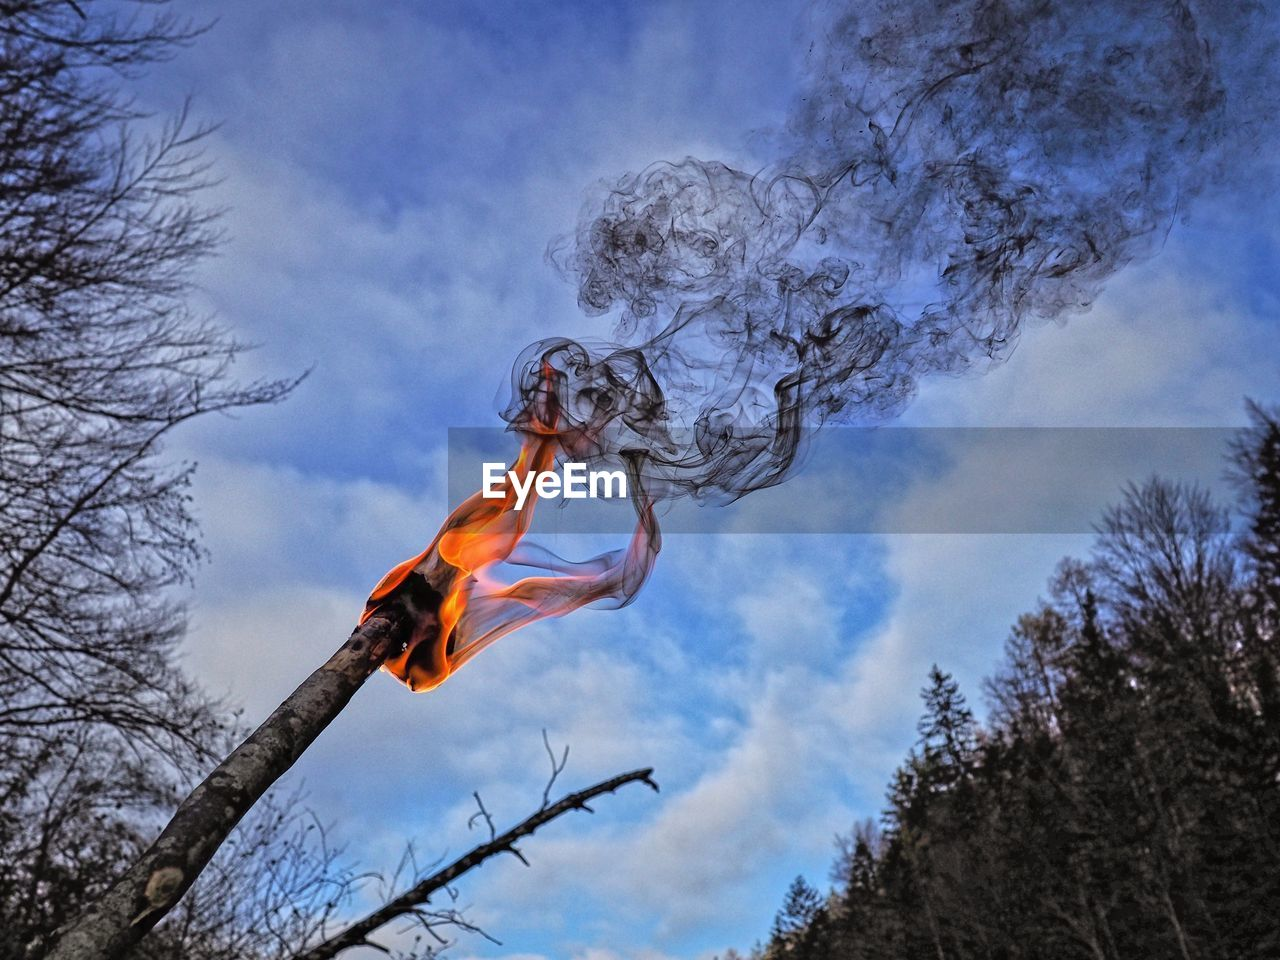 tree, low angle view, sky, cloud - sky, nature, day, plant, bare tree, outdoors, branch, no people, motion, environment, orange color, flying, wind, fire, burning, smoke - physical structure, fire - natural phenomenon